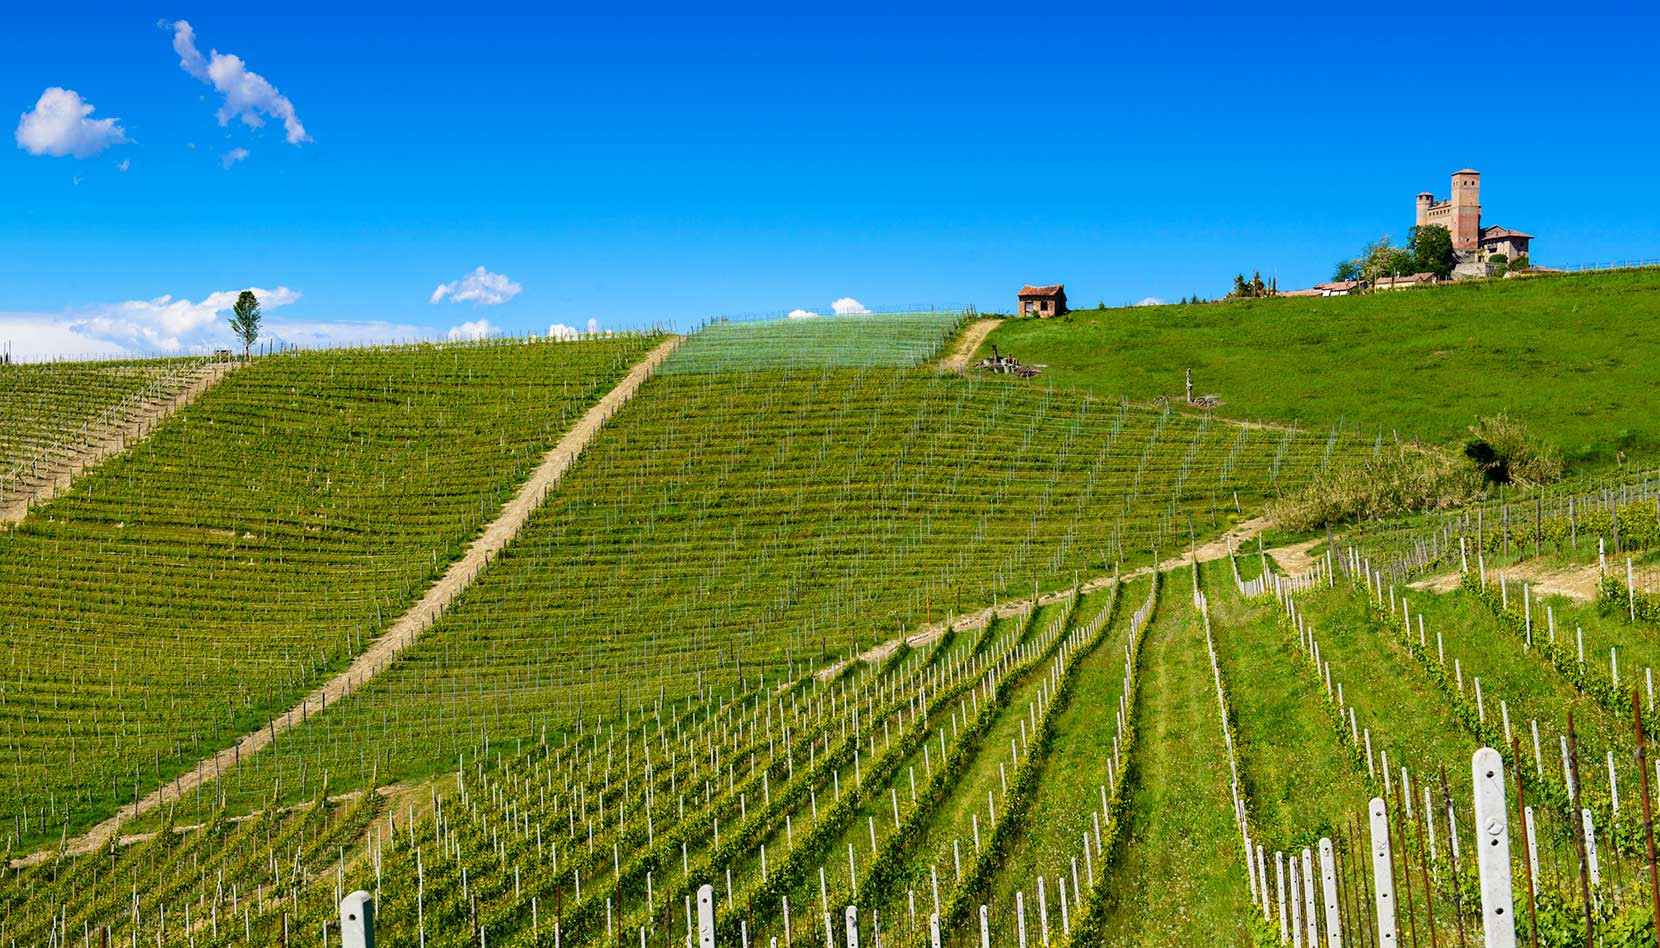 The Vignarionda Cru vineyard of Barolo in the village of Serralunga d'Alba. ©Oddero